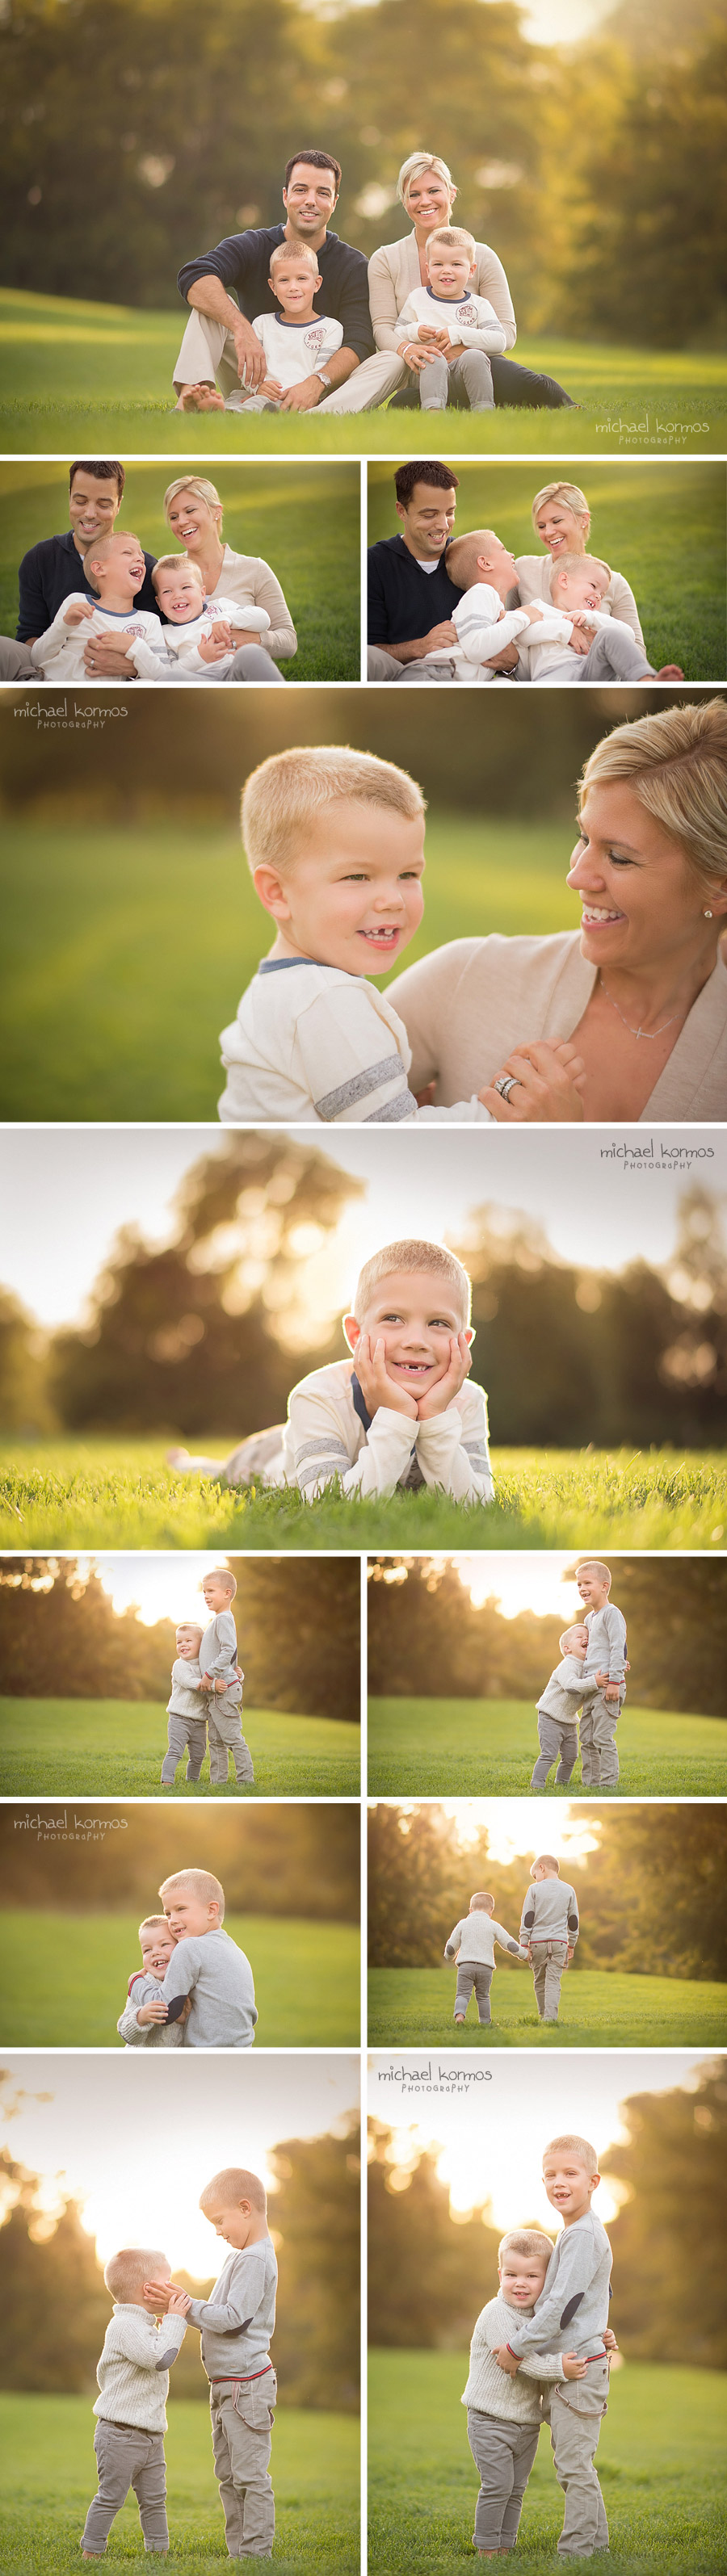 photographer captures brothers playing together at golden hour